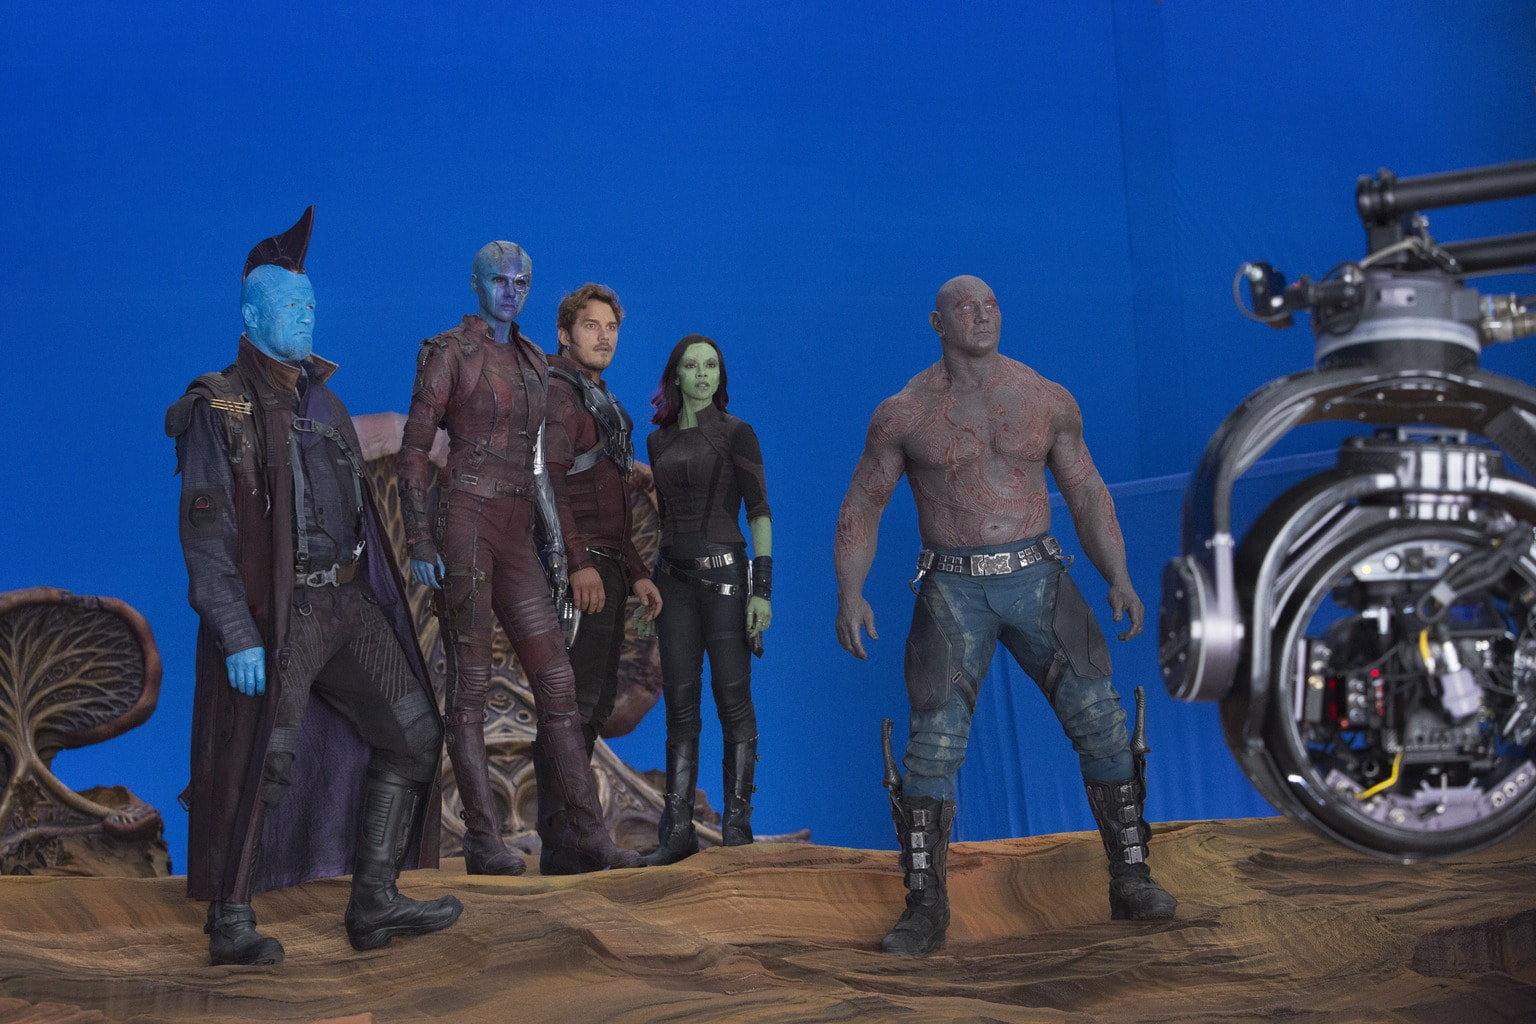 Who's excited about seeing Karen Gillan, Nebula, in Guardians of the Galaxy Vol. 2?